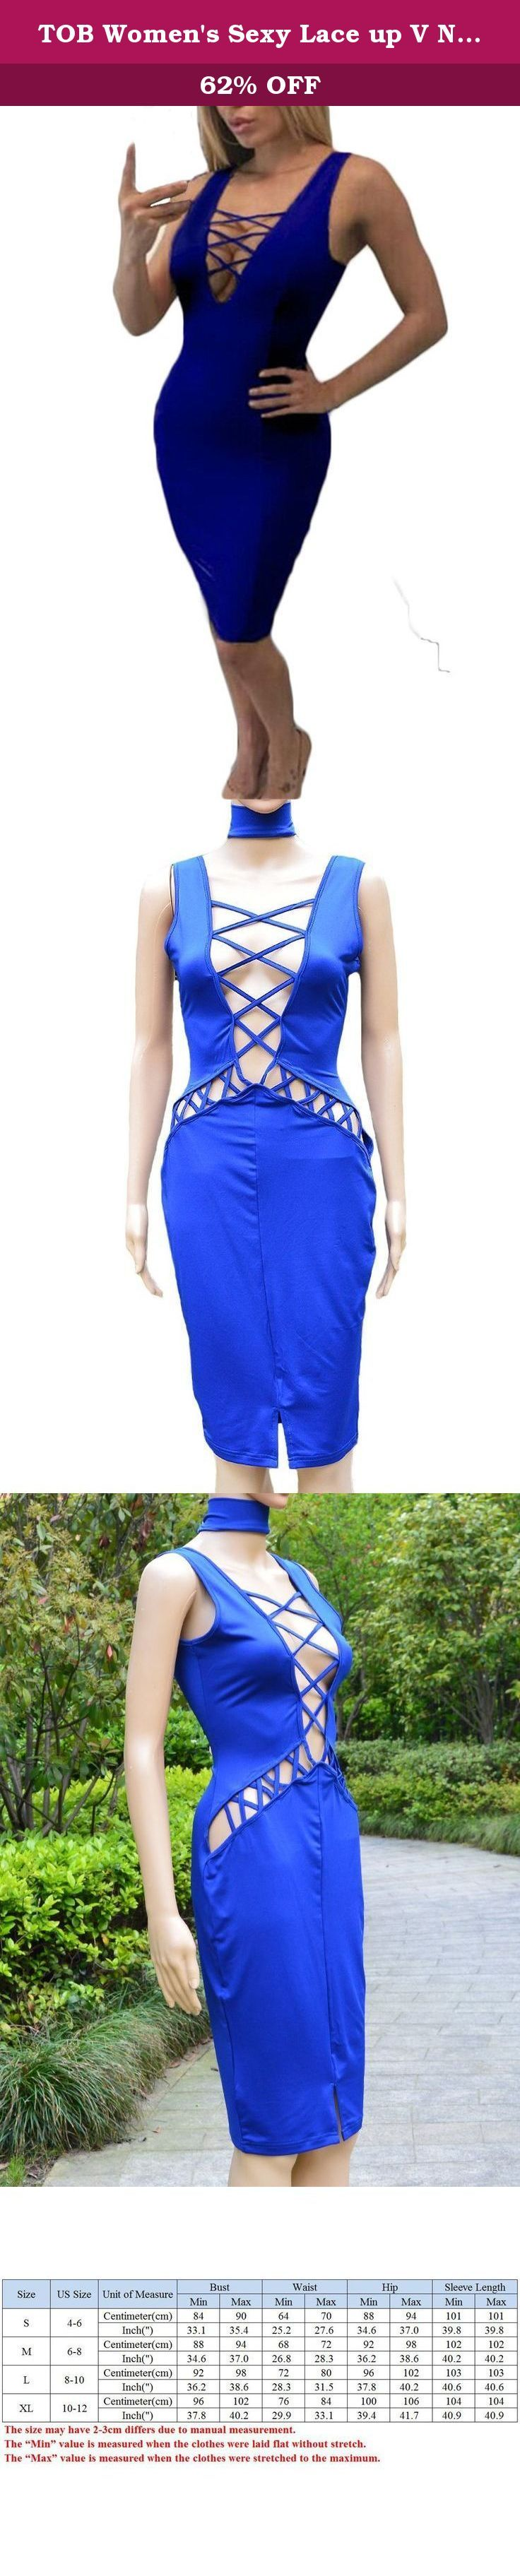 TOB Women's Sexy Lace up V Neck Bodycon Midi Pencil Tank Dress Night Club Royal Blue. About TOB Apparel TOB is a vogue brand which is dedicated to provide fashion clothes with high quality and affordable prices. We see our customers' experience as the life of the brand. We will do our best achieve 100 percent customer's satisfactory. We design our own model of latest trend and we have execllent factory working with us. In order to make sure that you have a good shopping experience, we...